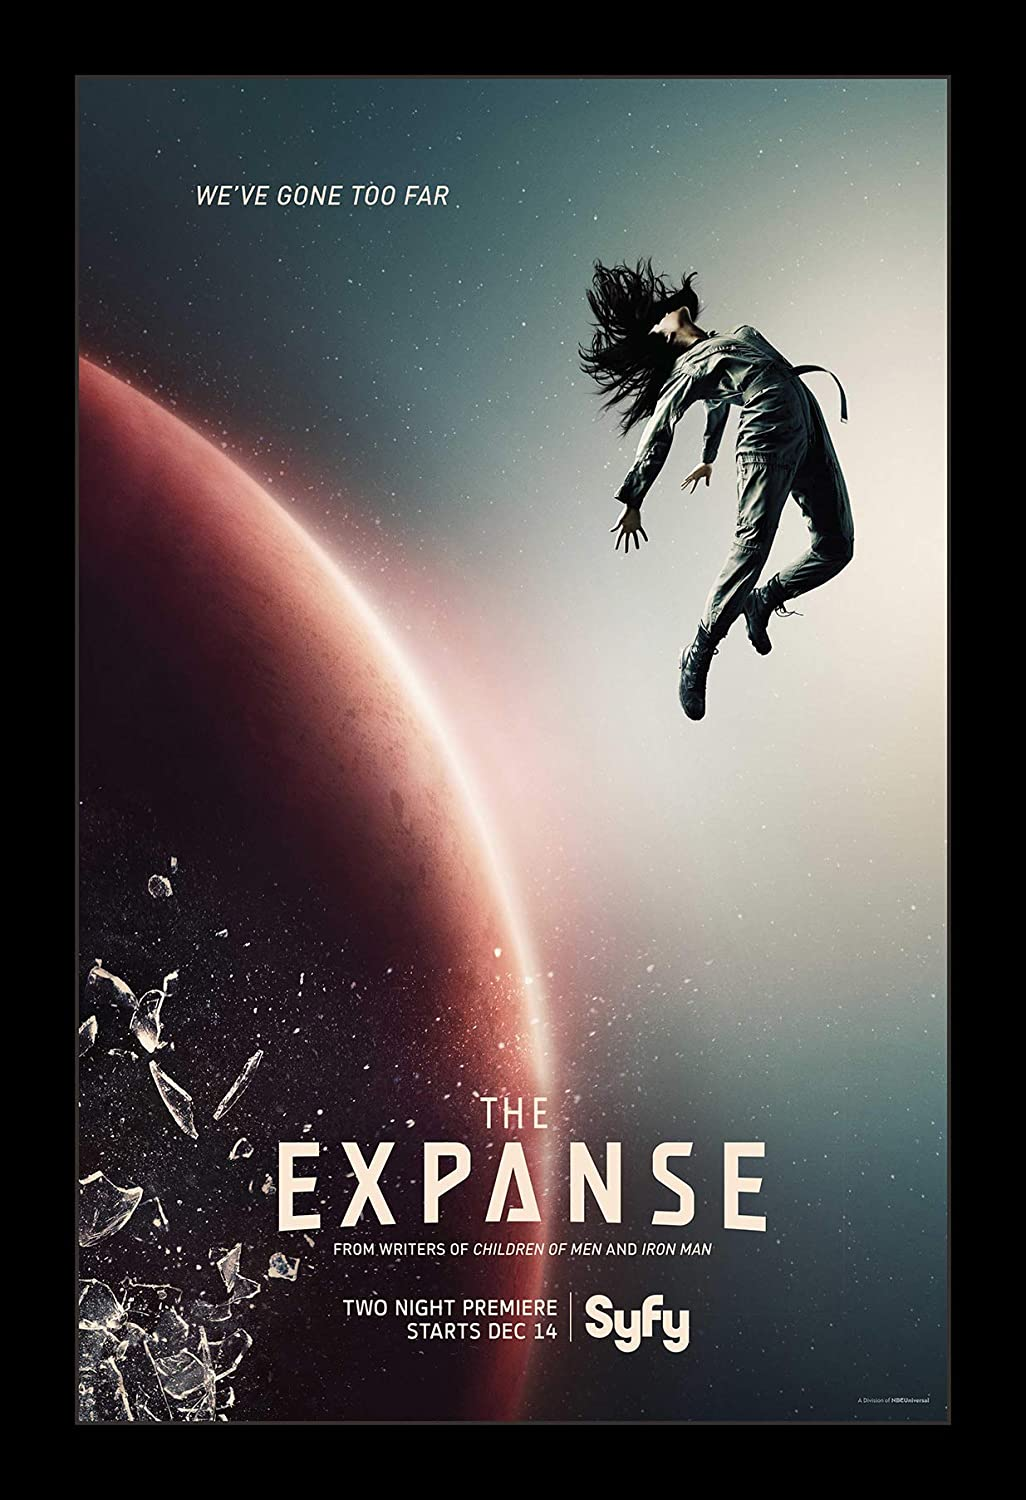 Amazon.com: Wallspace 11x17 Framed Movie Poster - The Expanse: Posters &  Prints